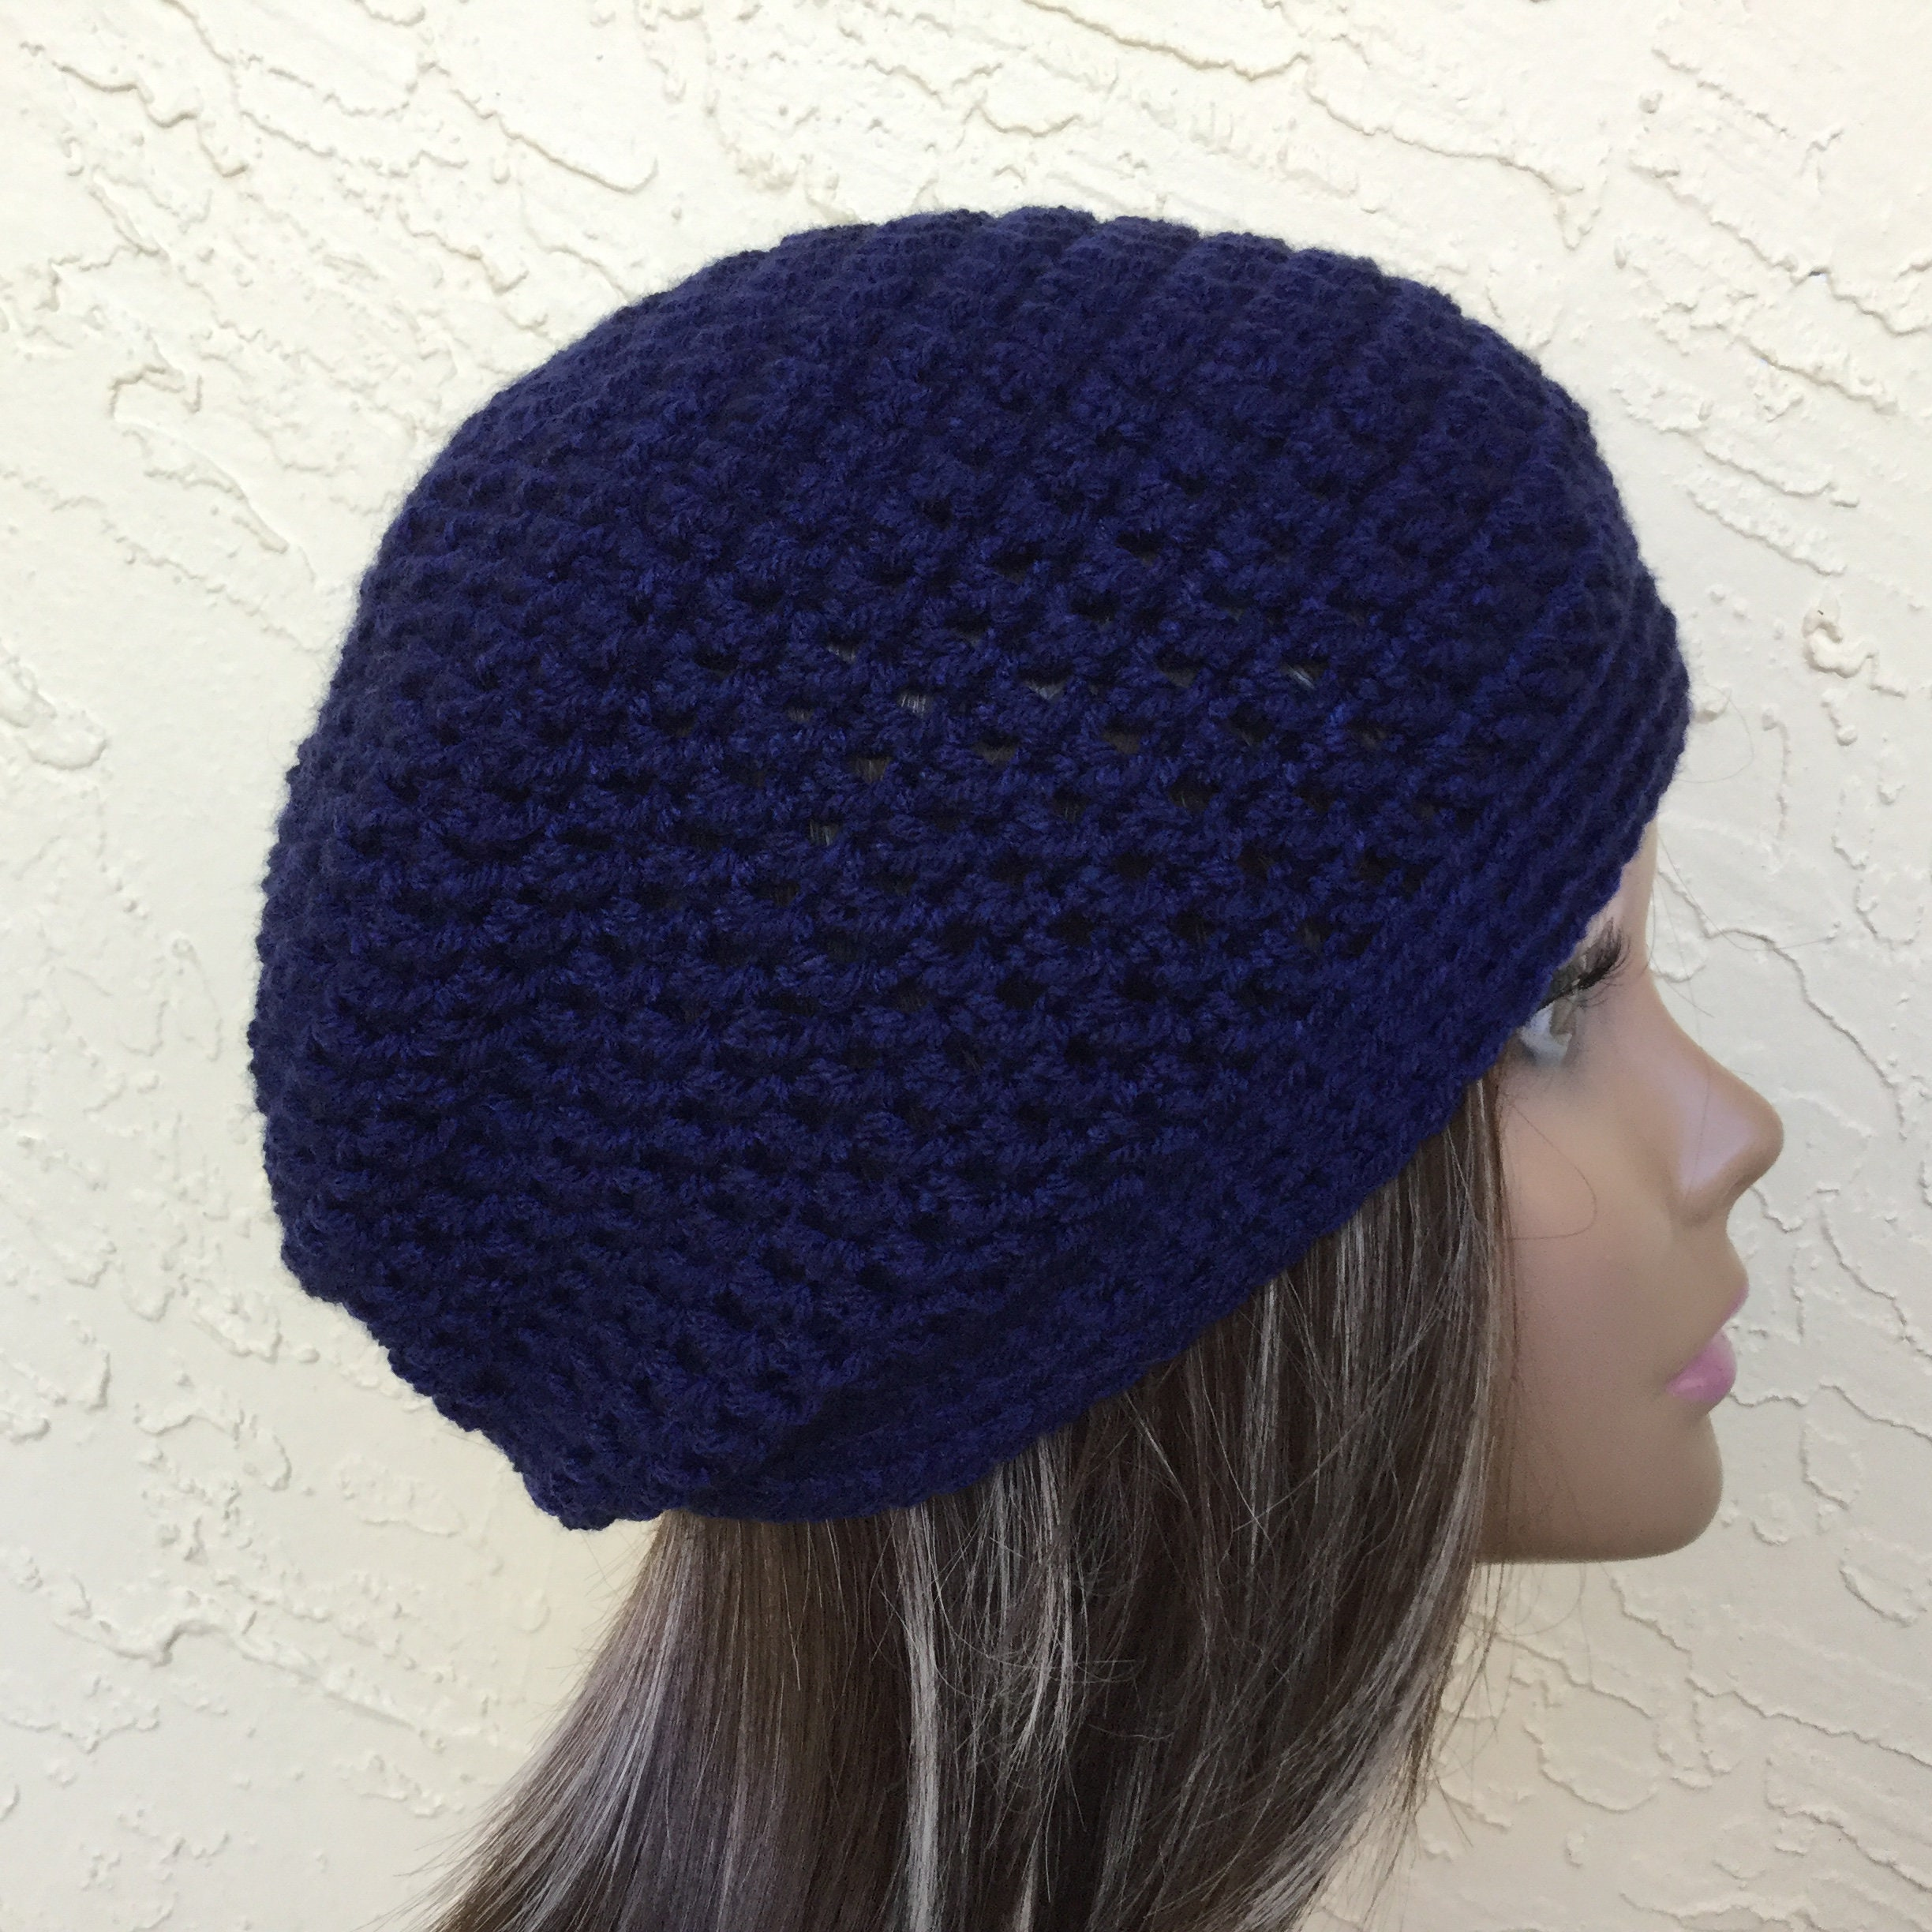 fbdc1b483 Navy Blue Slouchy Beanie Hat For Women